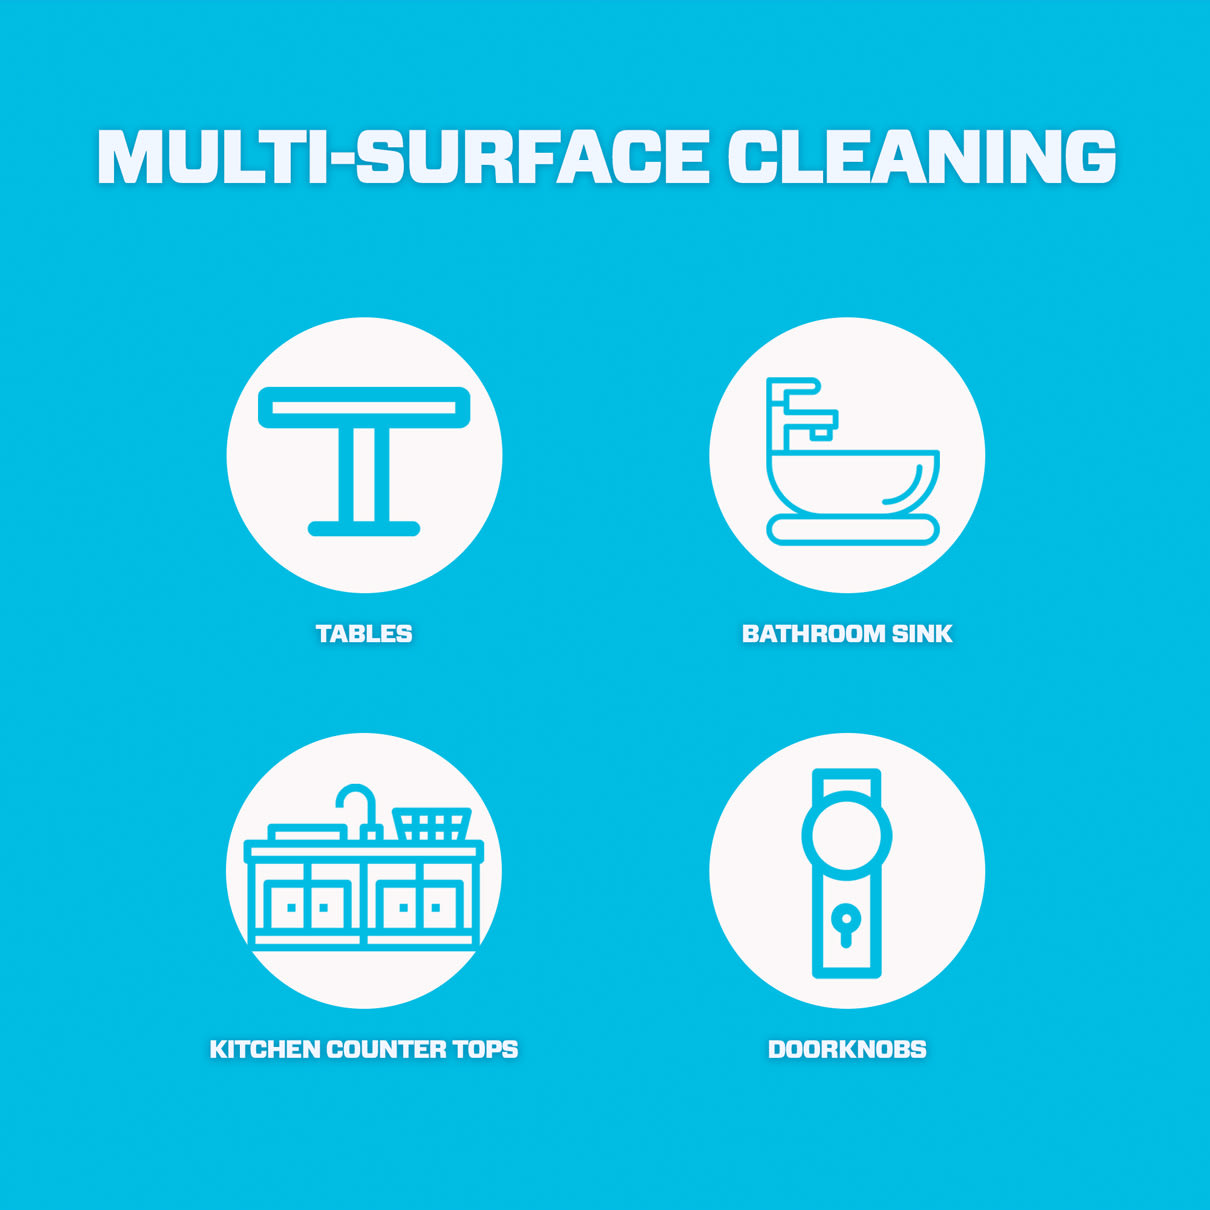 Mr. Clean multi-surface cleaning